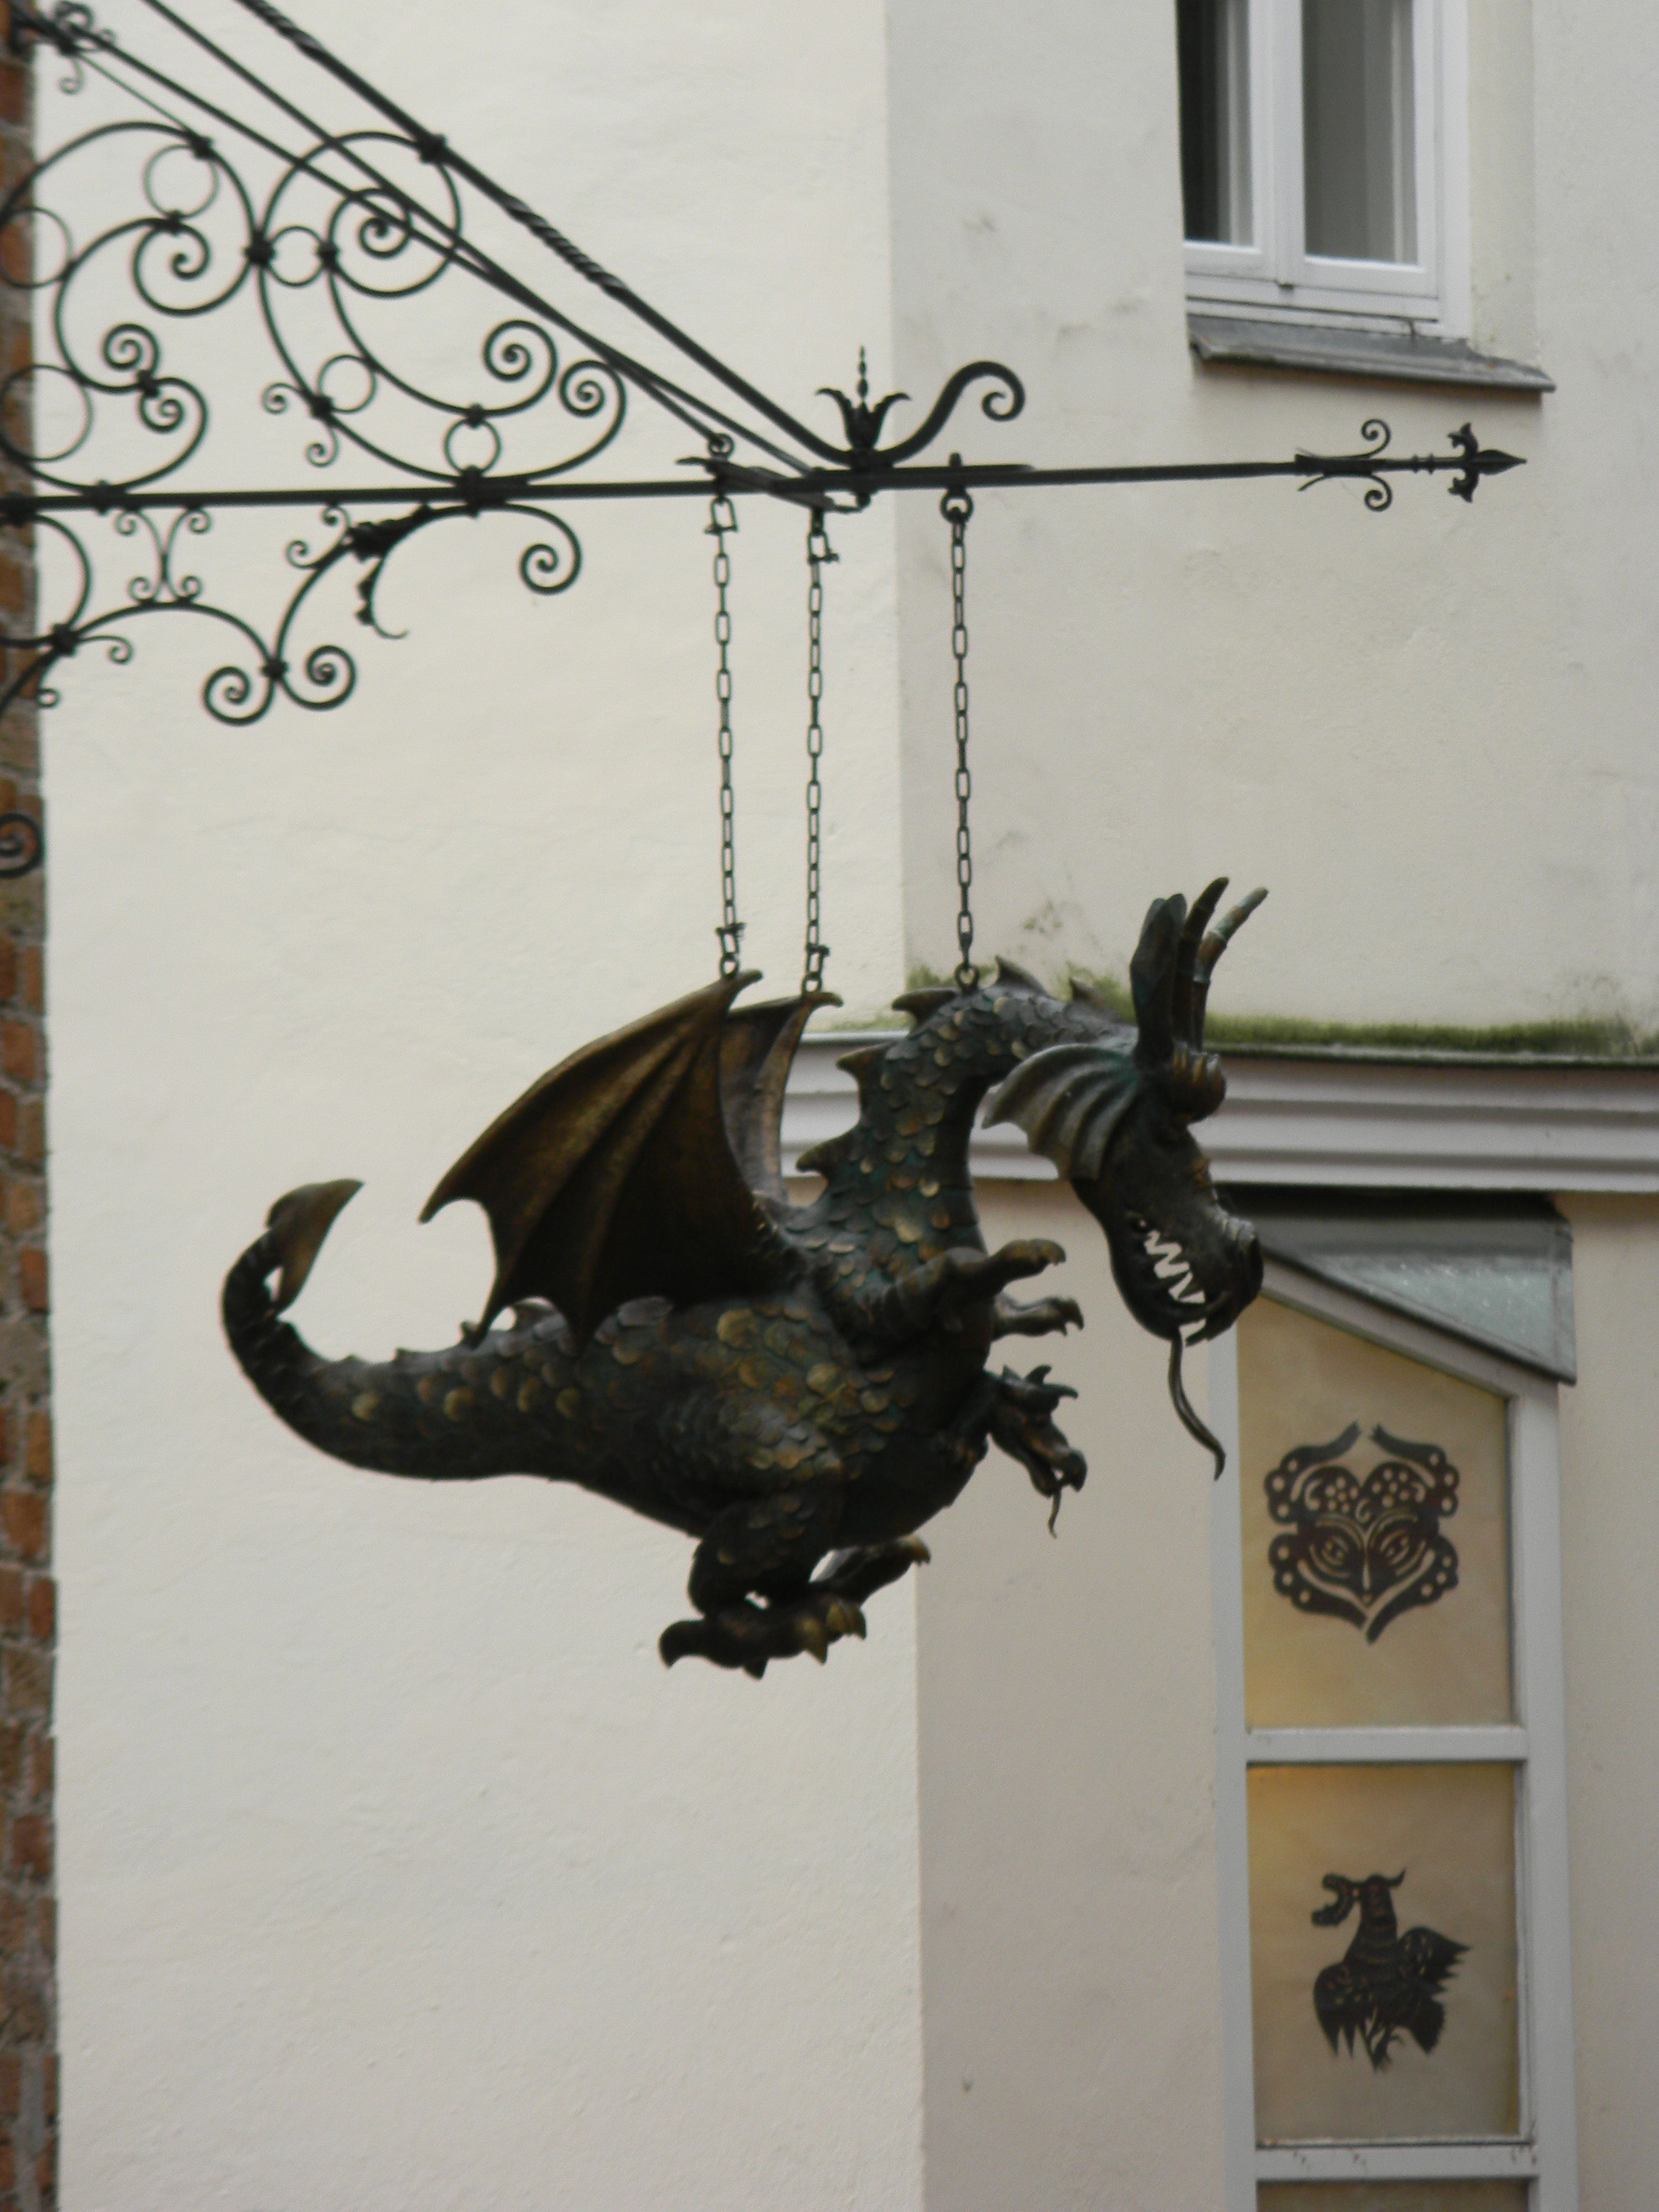 Puppet Museum In Lubeck Germany Dragons Wizards And